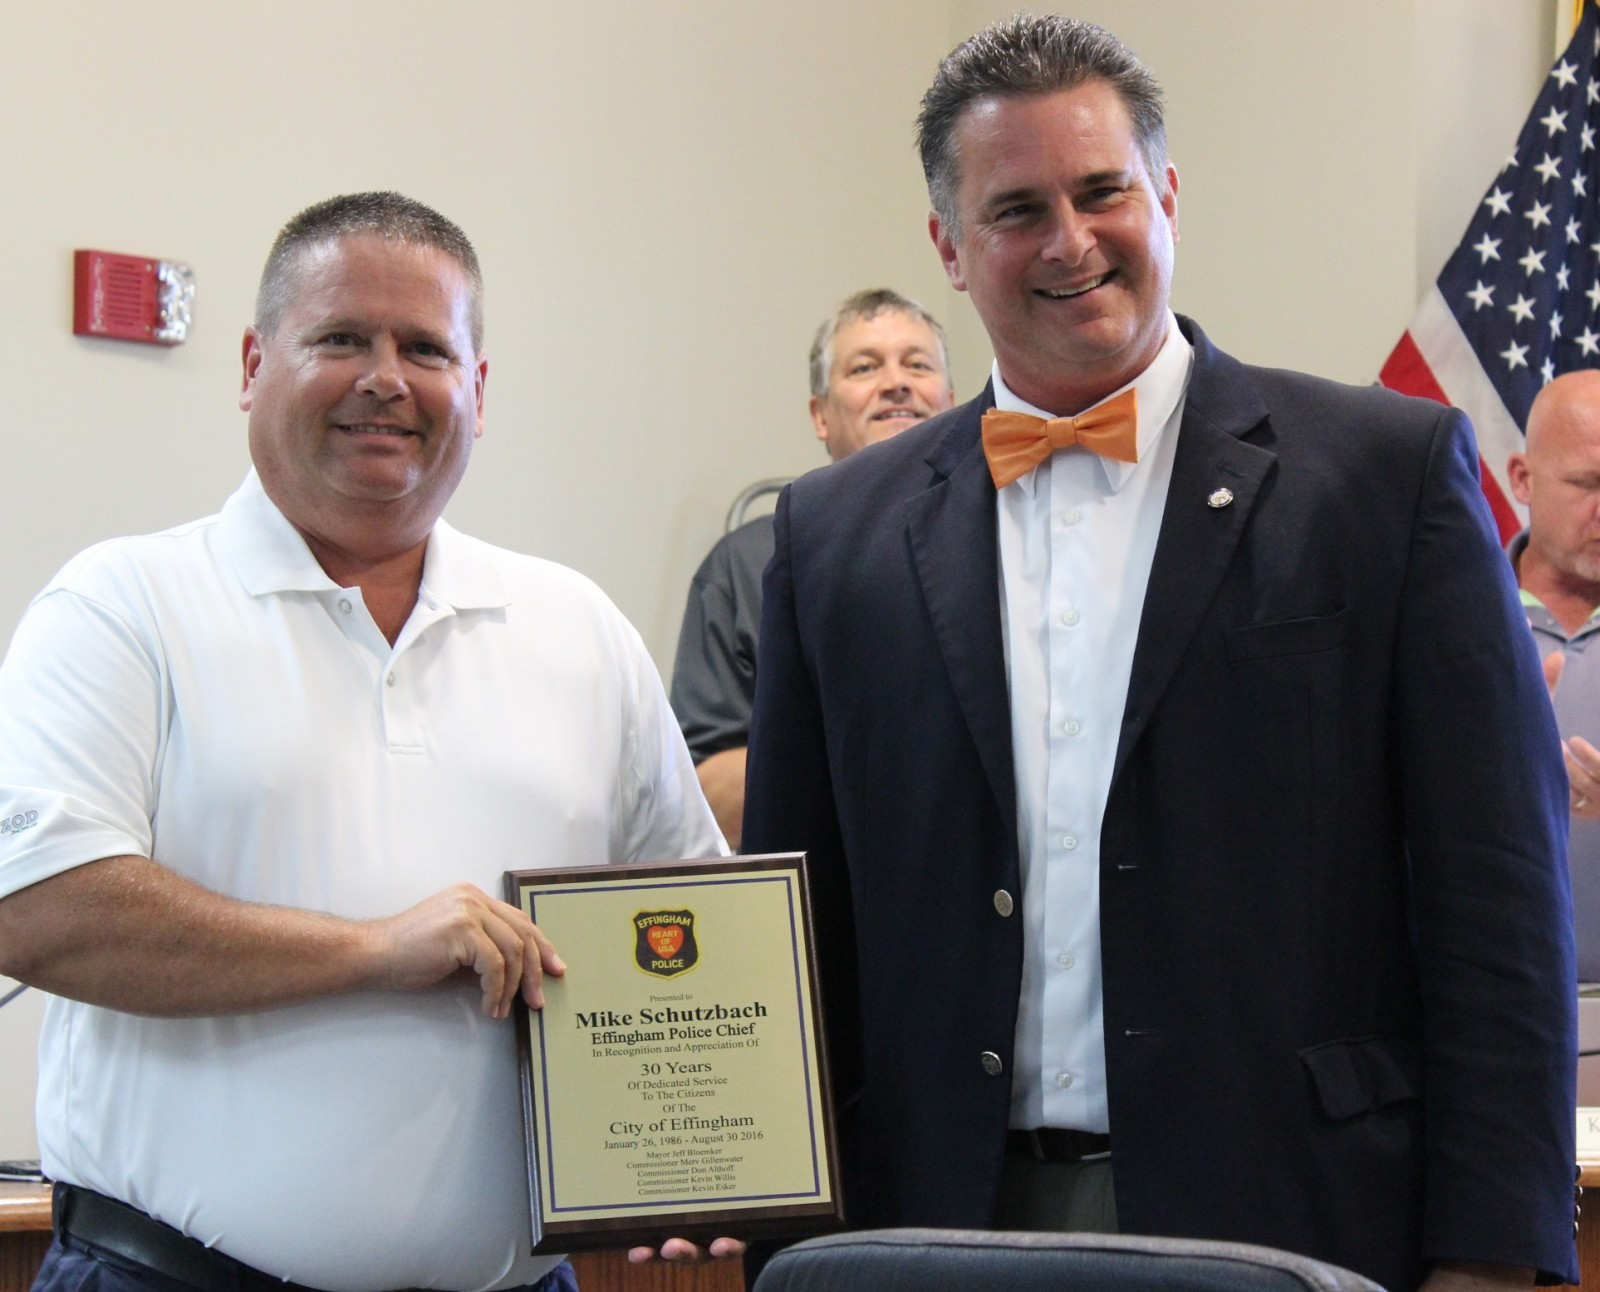 Left: Retired Police Chief Mike Schutzbach; Right Effingham Mayor Jeff Bloemker